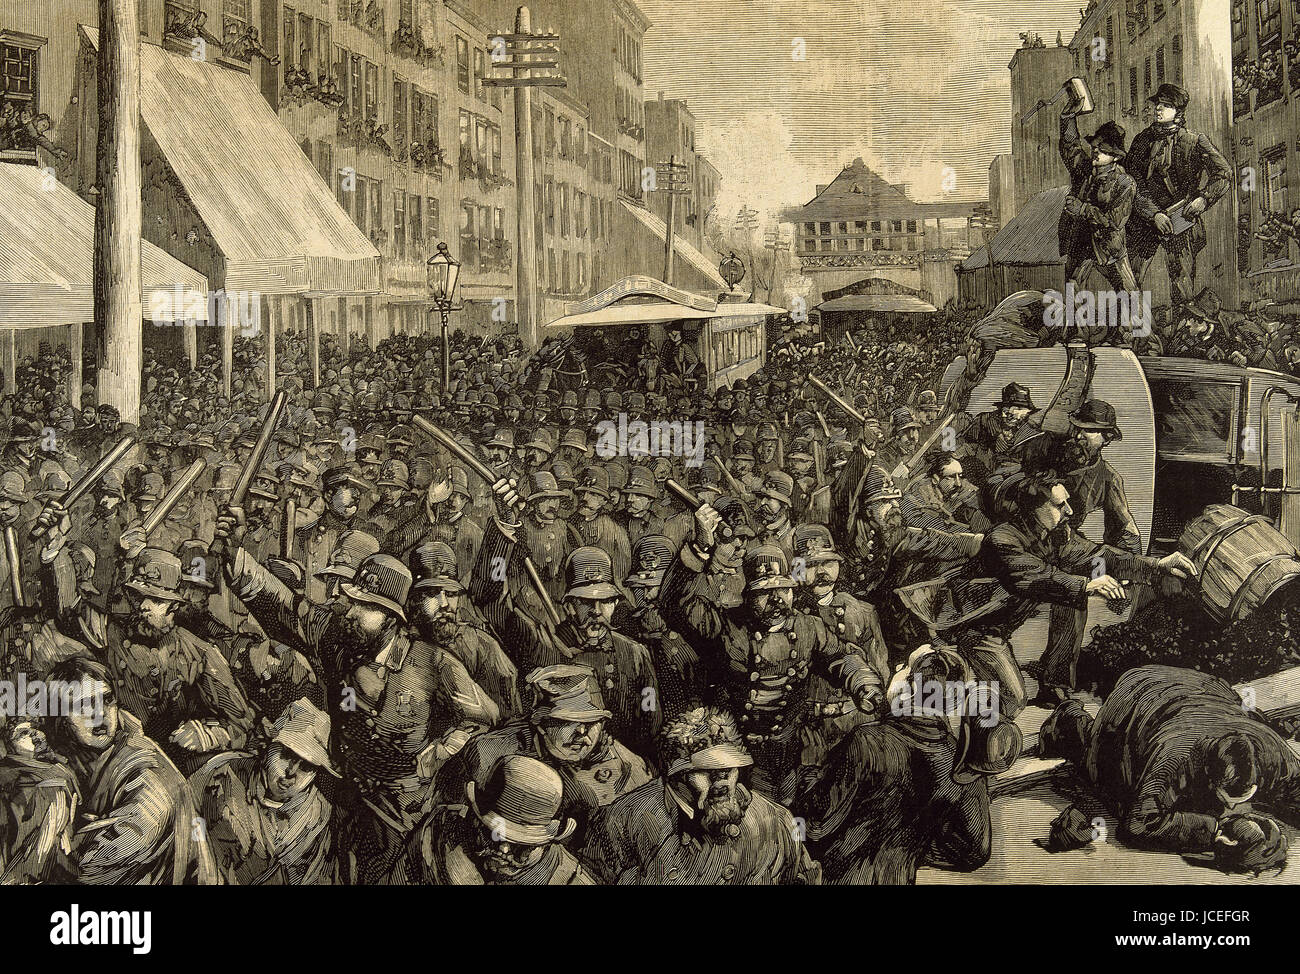 United States. New York city. Police officers dispersing the strike of employees of Streetcar. March 4, 1886. Engraving. - Stock Image